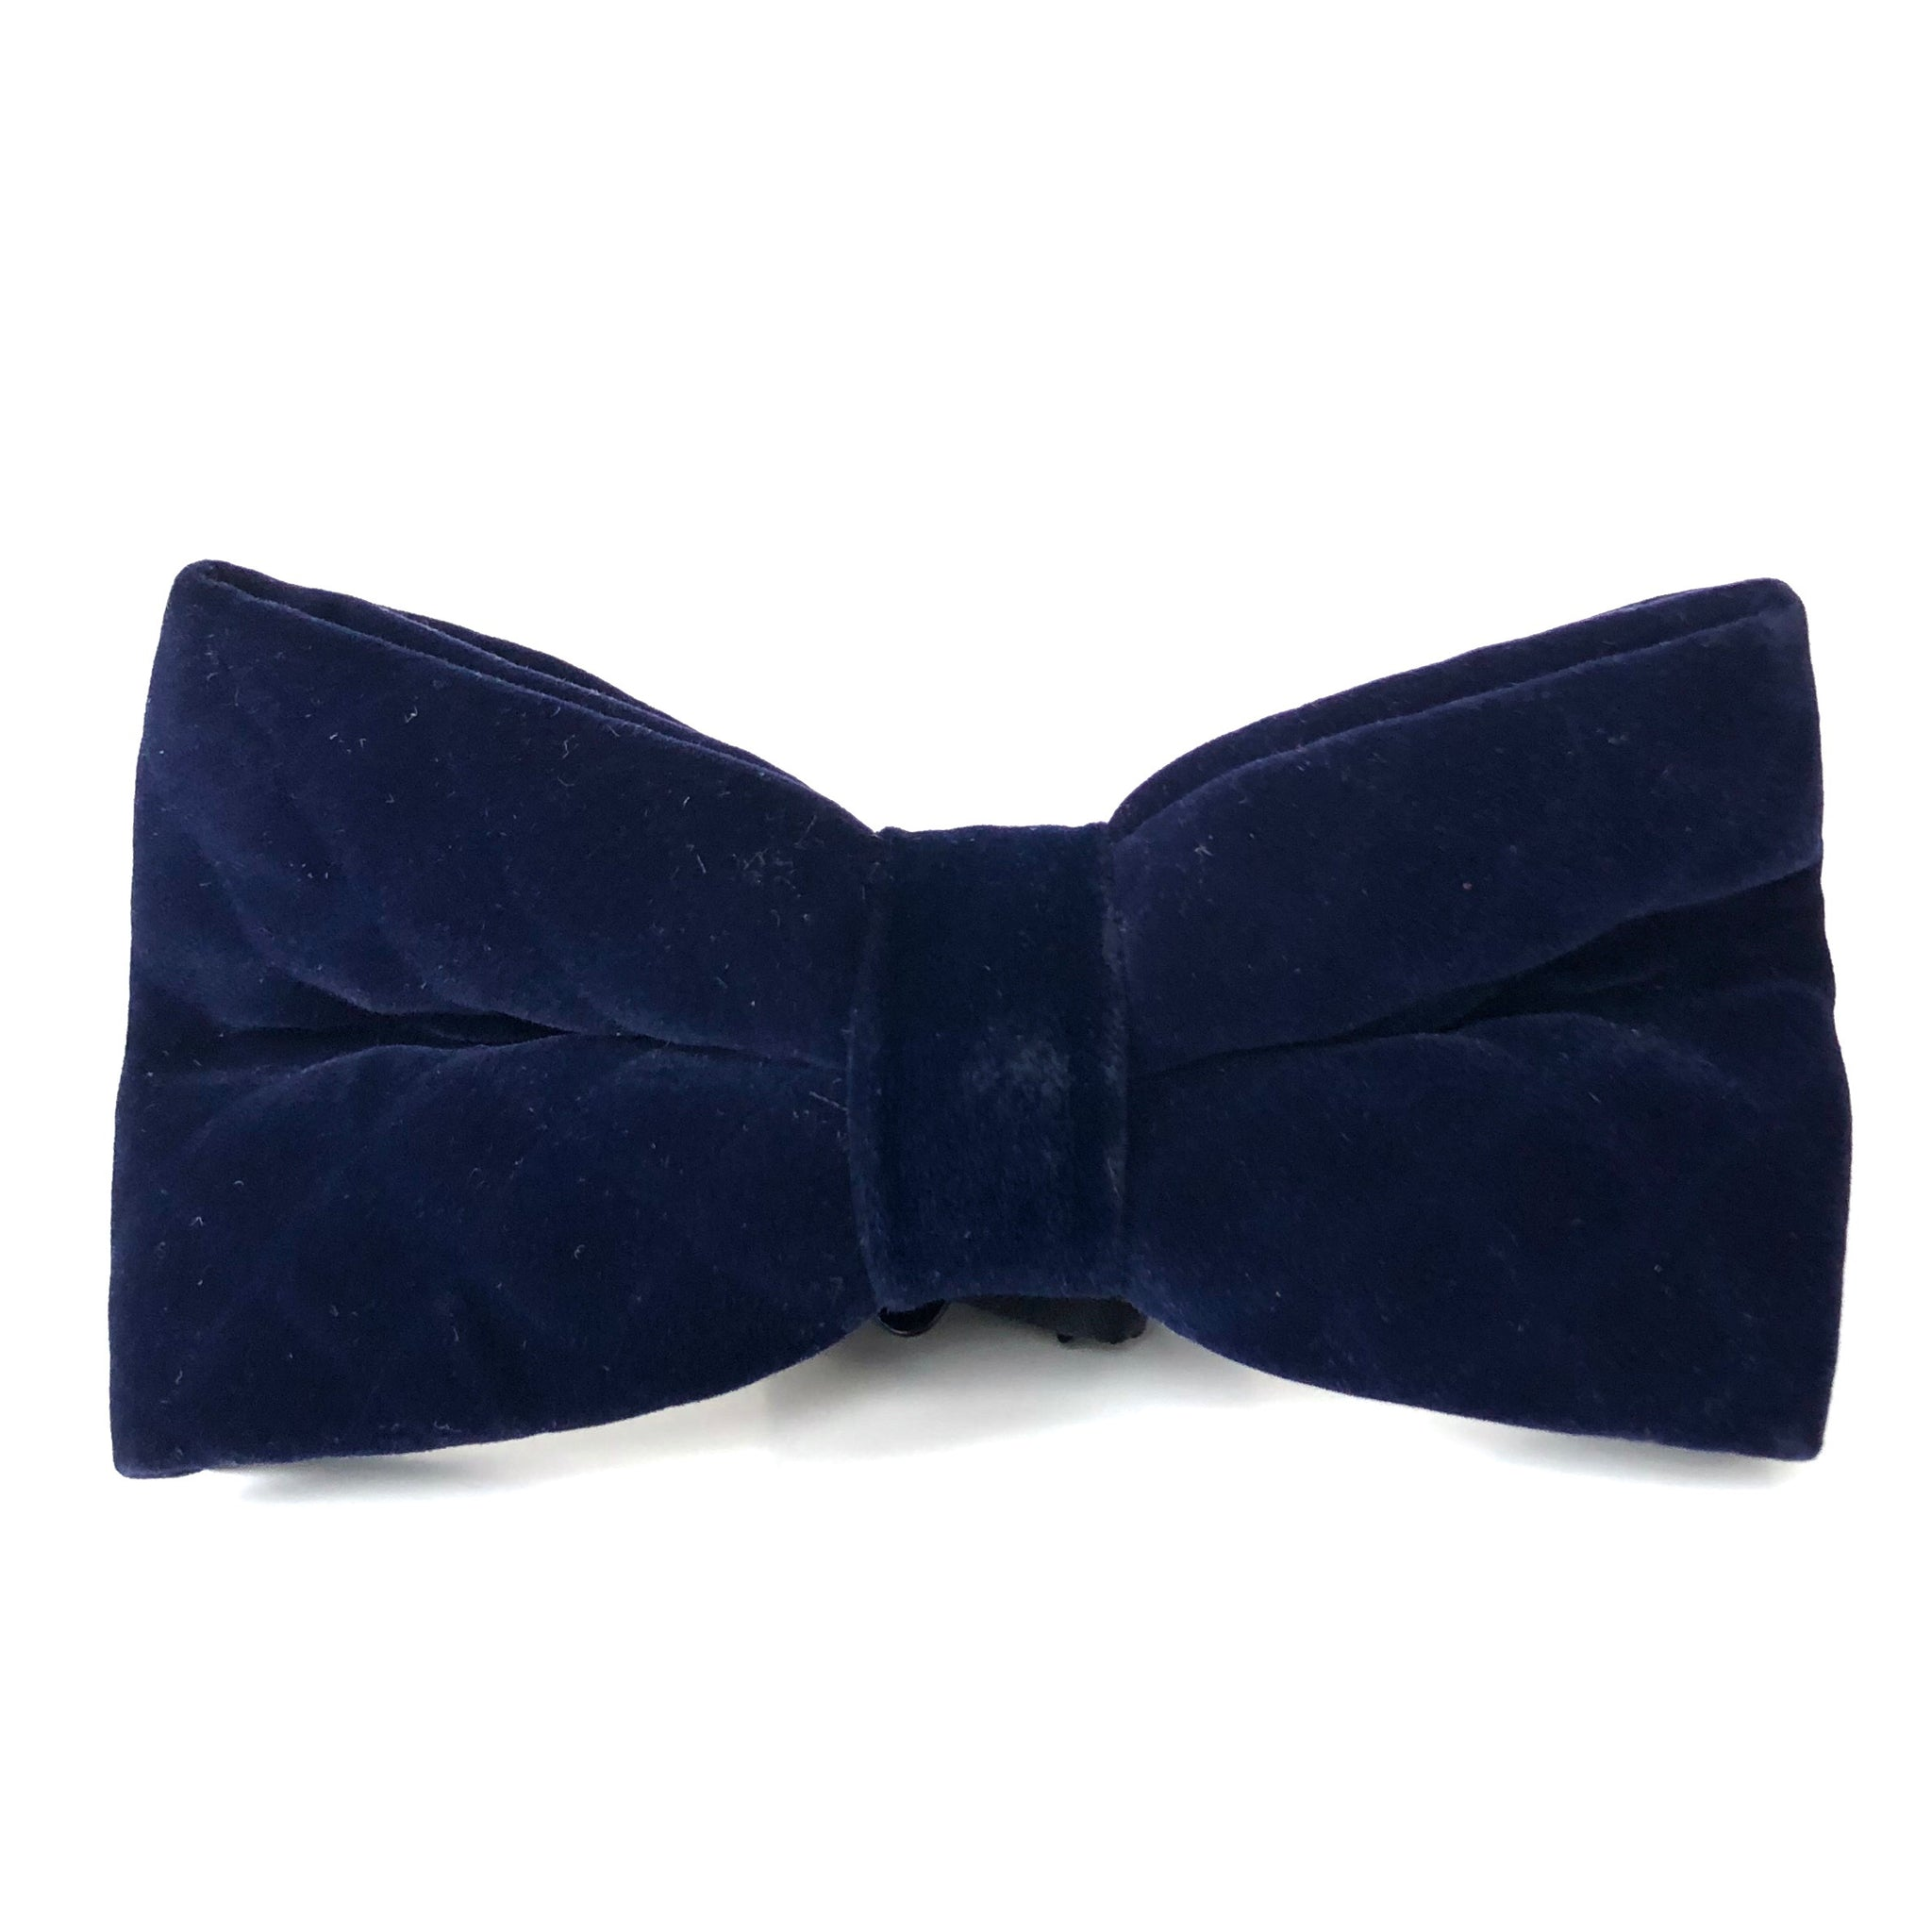 Simon Bow Tie in Navy